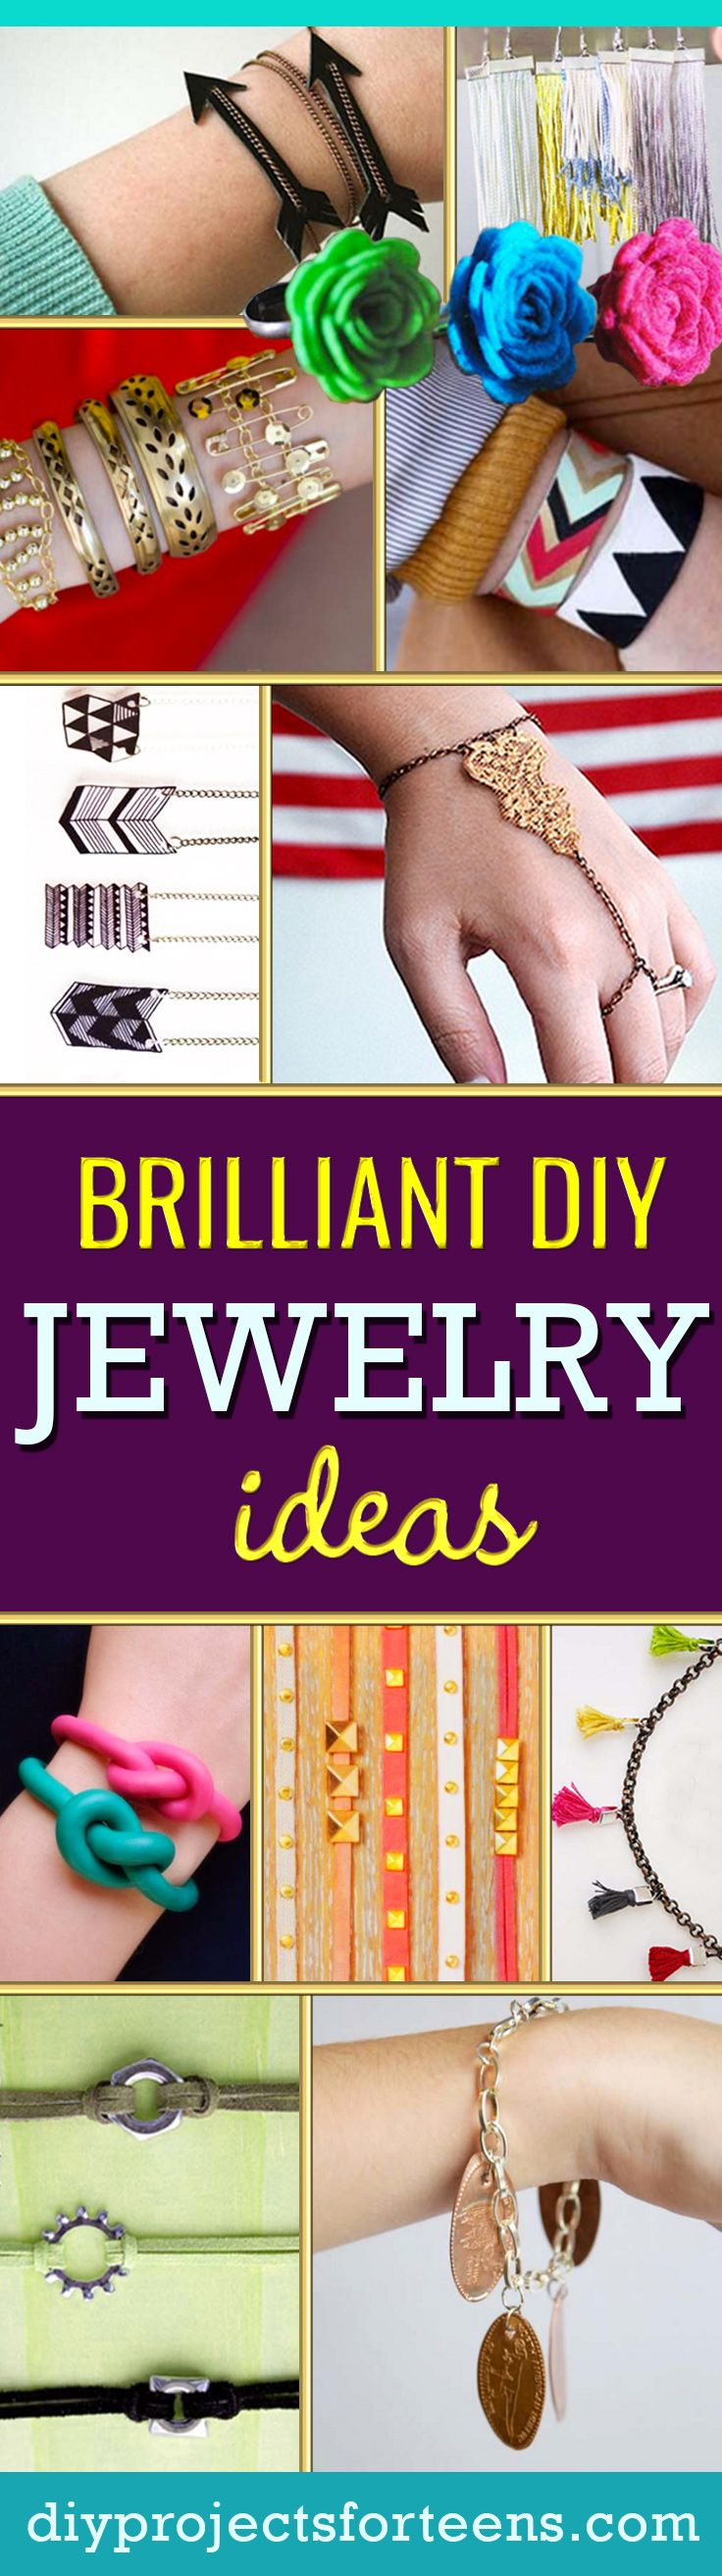 Uncategorized Craft Ideas Step By Step Instructions 32 best diy jewelry images on pinterest projects homemade 36 fun ideas